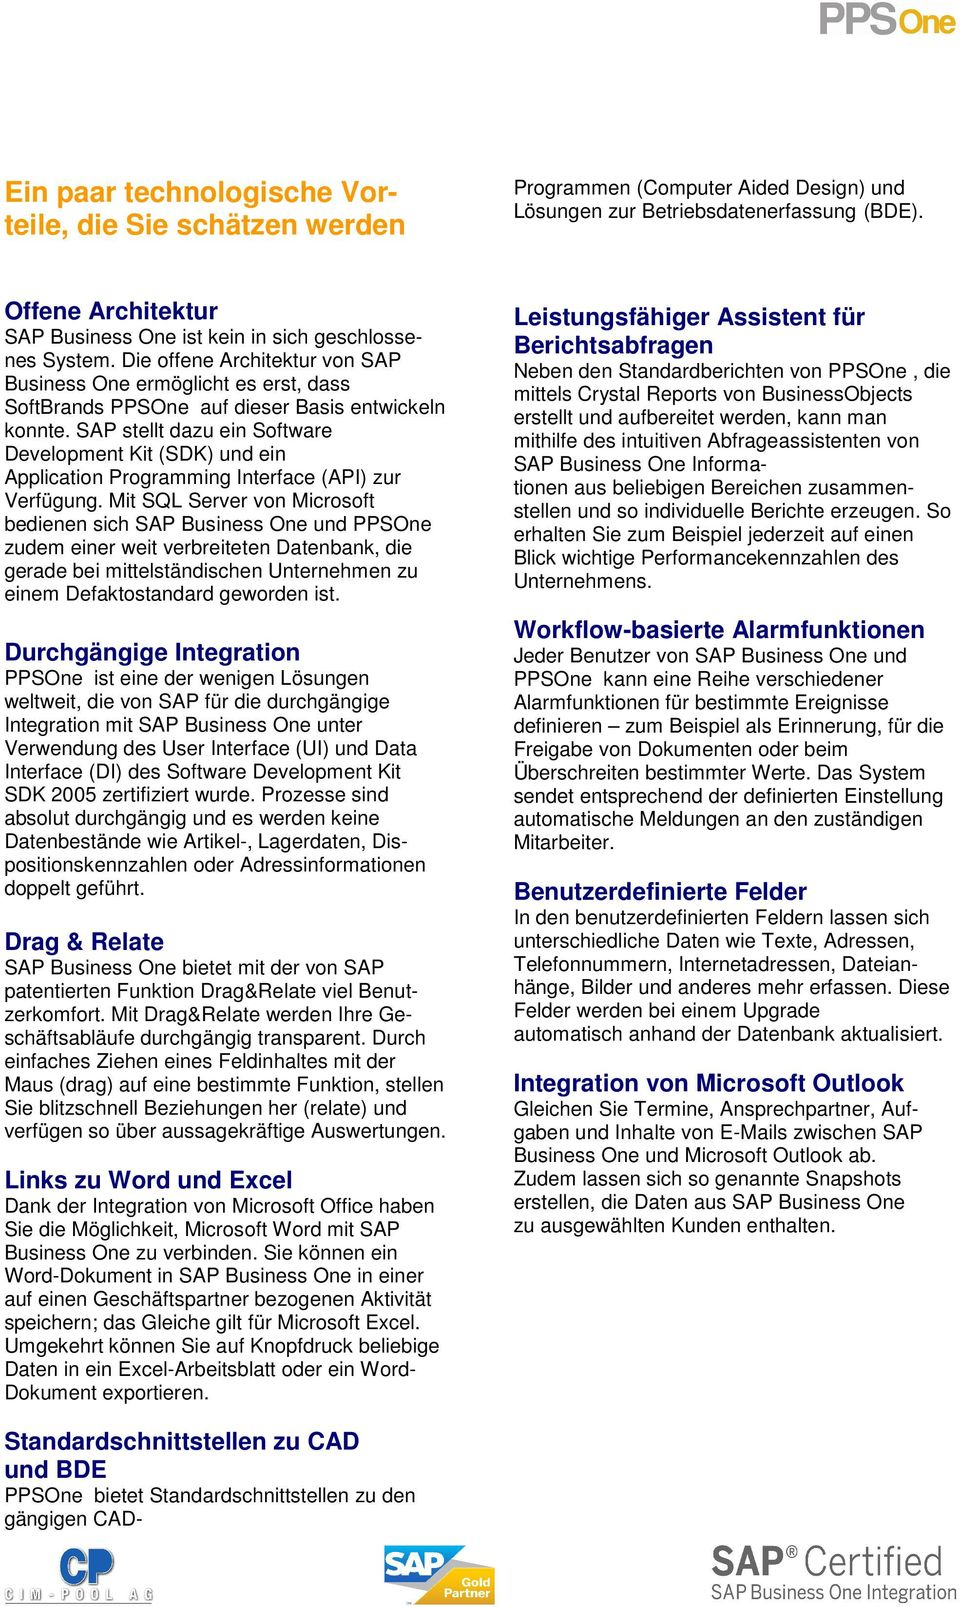 SAP stellt dazu ein Software Development Kit (SDK) und ein Application Programming Interface (API) zur Verfügung.